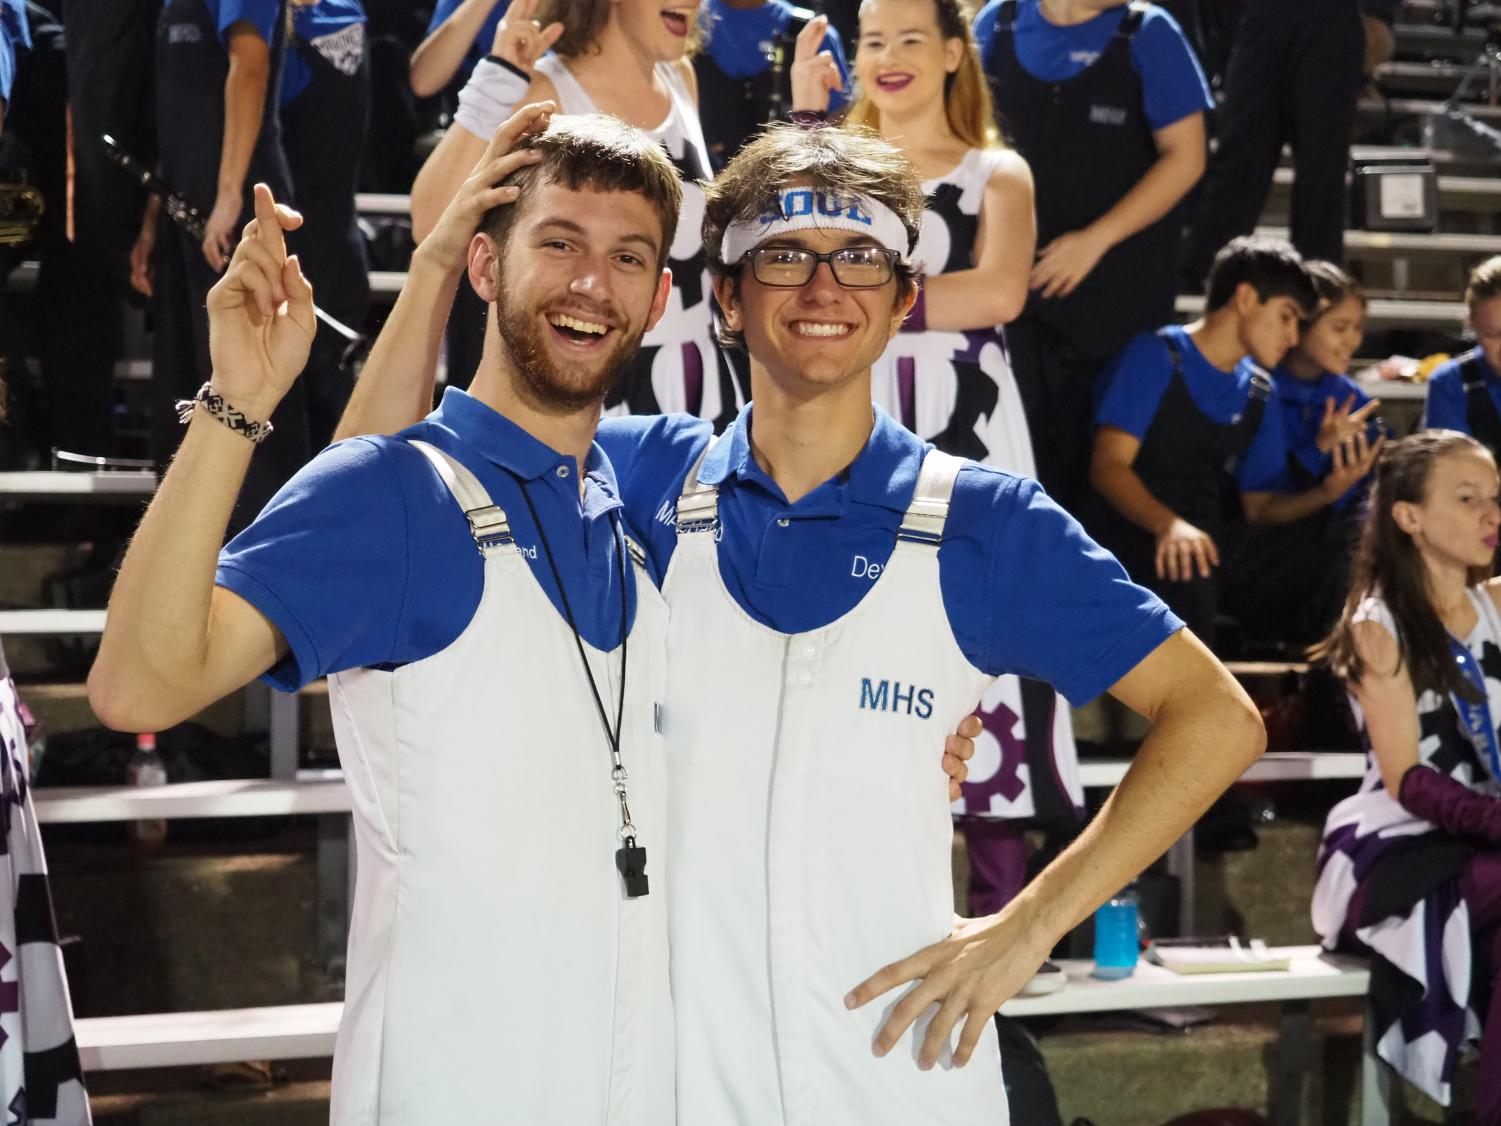 "BAND BUDDIES: Senior Jonathan Forbes and junior Dexter Canning pose at the annual Battle of the Bell football game, in which McCallum defeated Travis, 72-0, at Burger Stadium on Oct. 26. The pair has been playing in marching band together since their time attending Fulmore Middle School. ""Jon is more dedicated to music than anyone I know, whether it be random facts, or just how to be better."" Canning said. Photo by Gregory James."